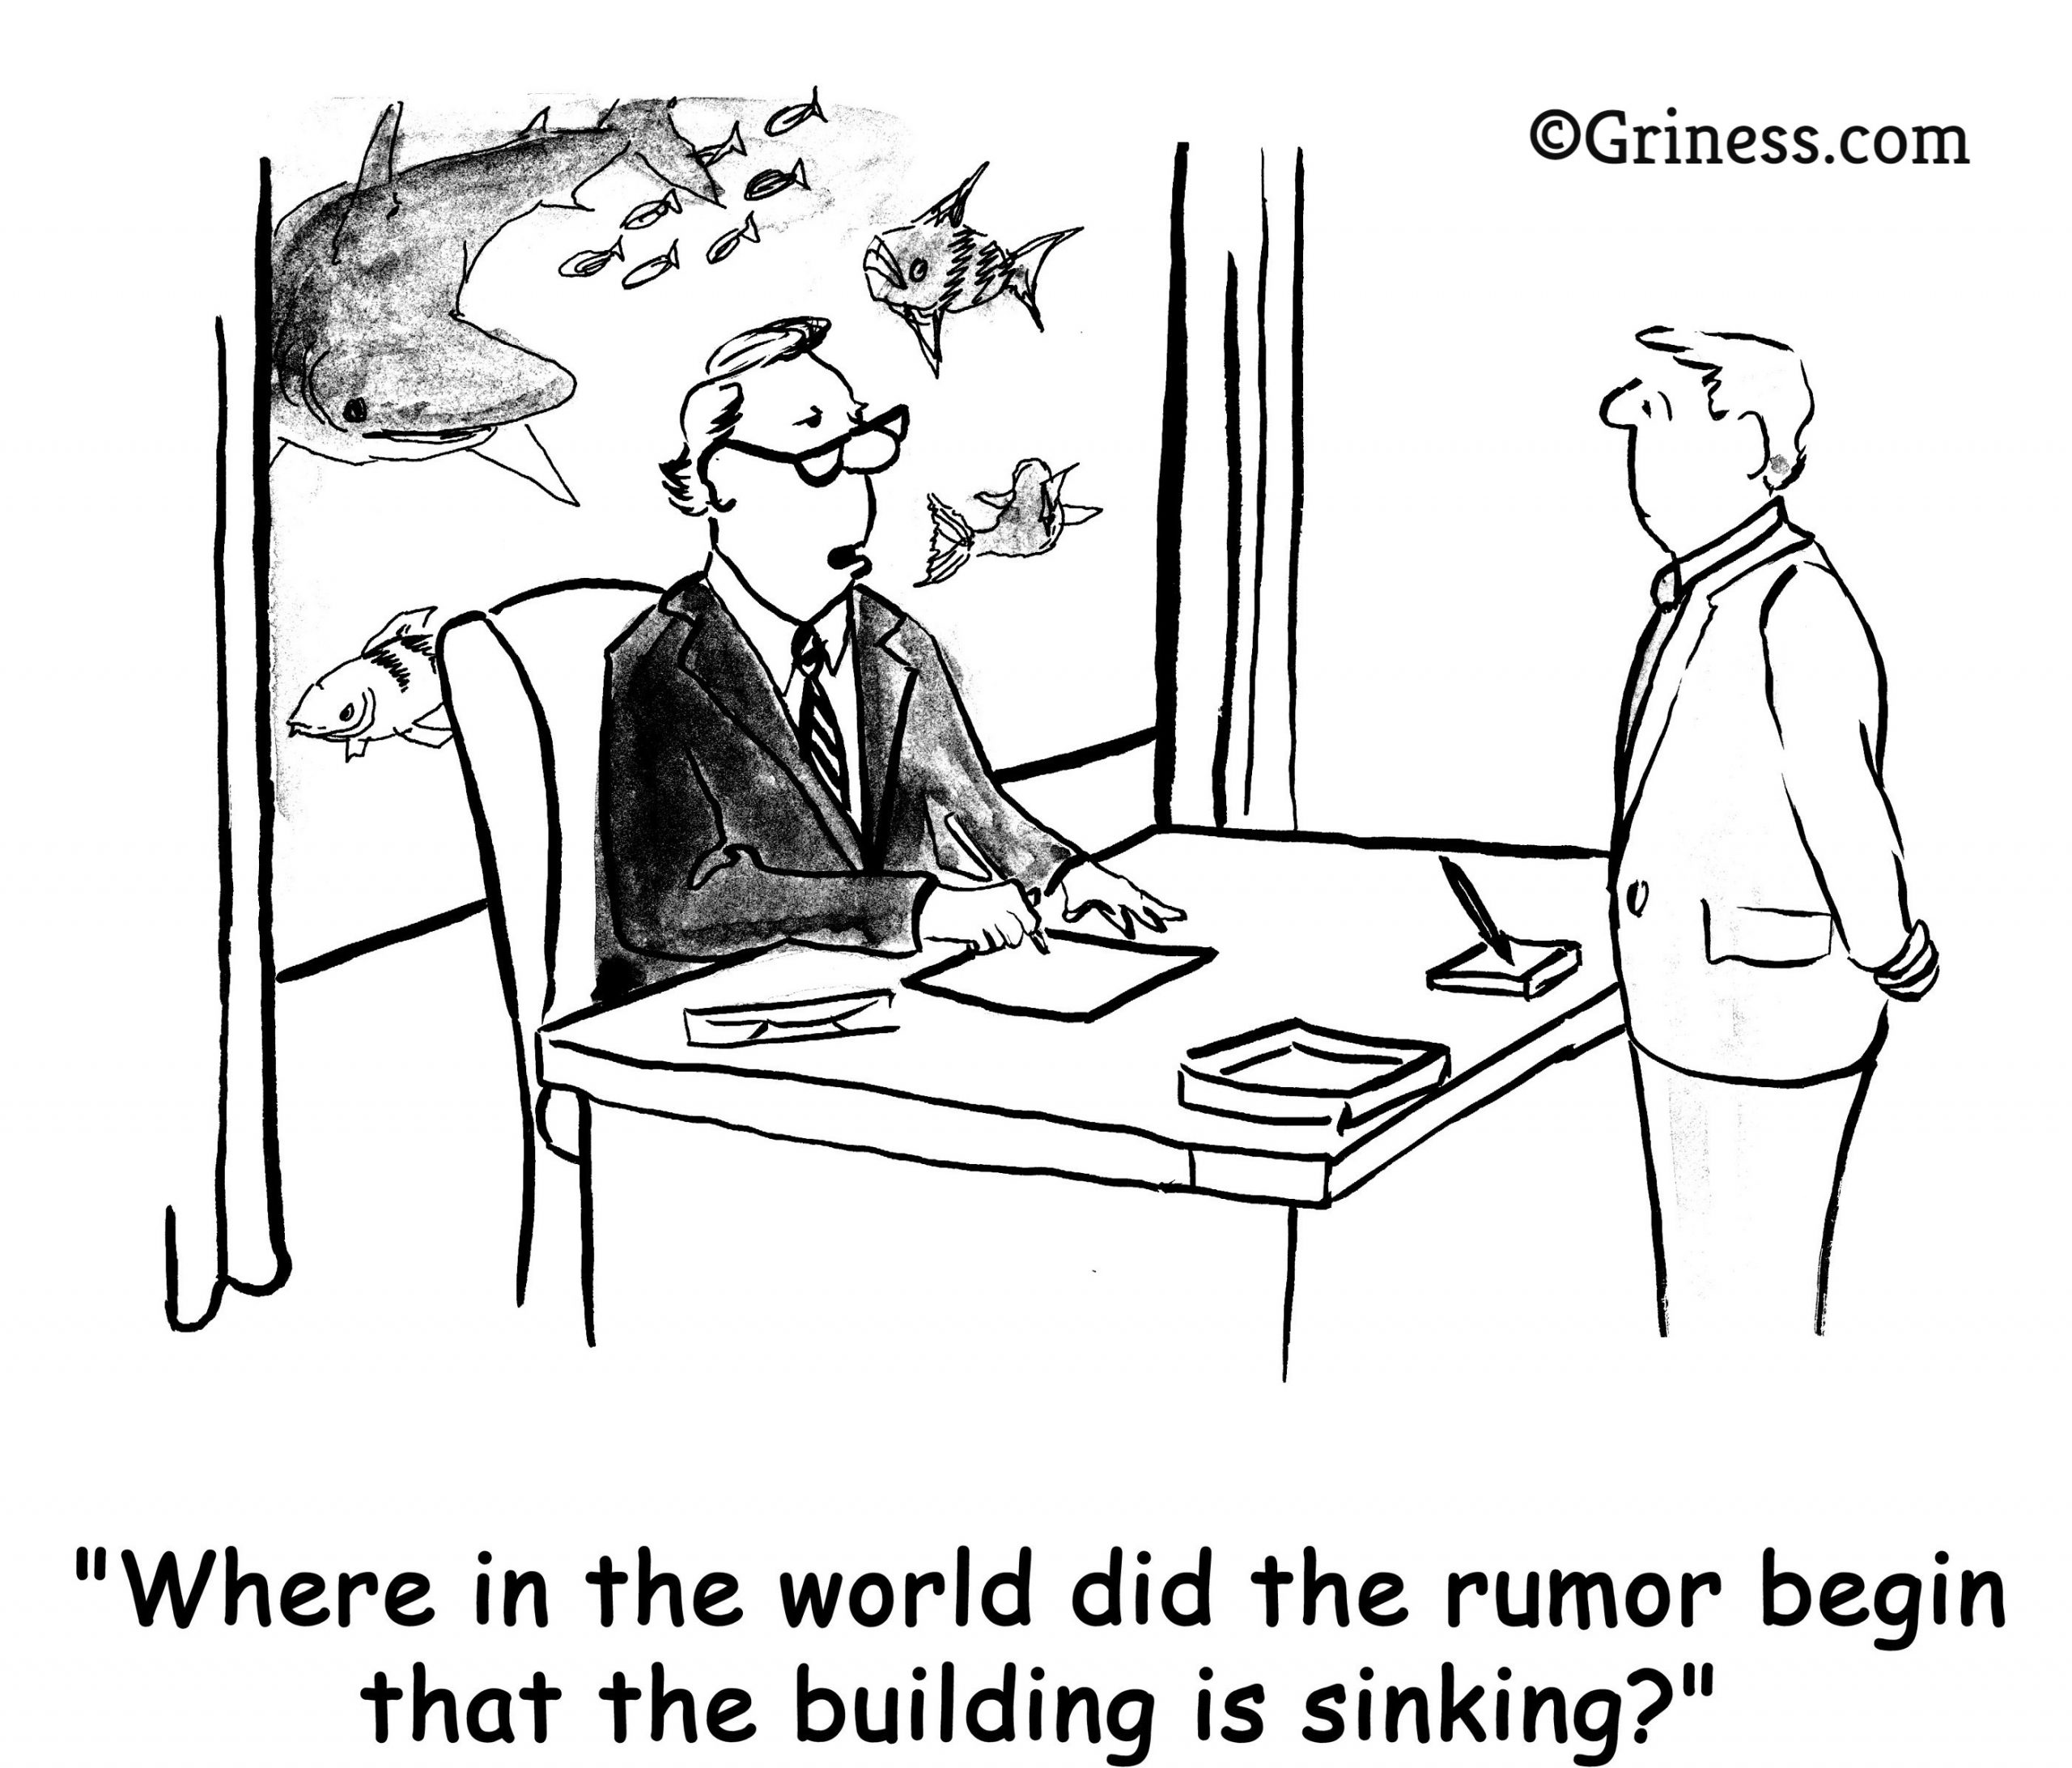 where in the world did the rumor begin that the building is sinking griness.com business cartoon free